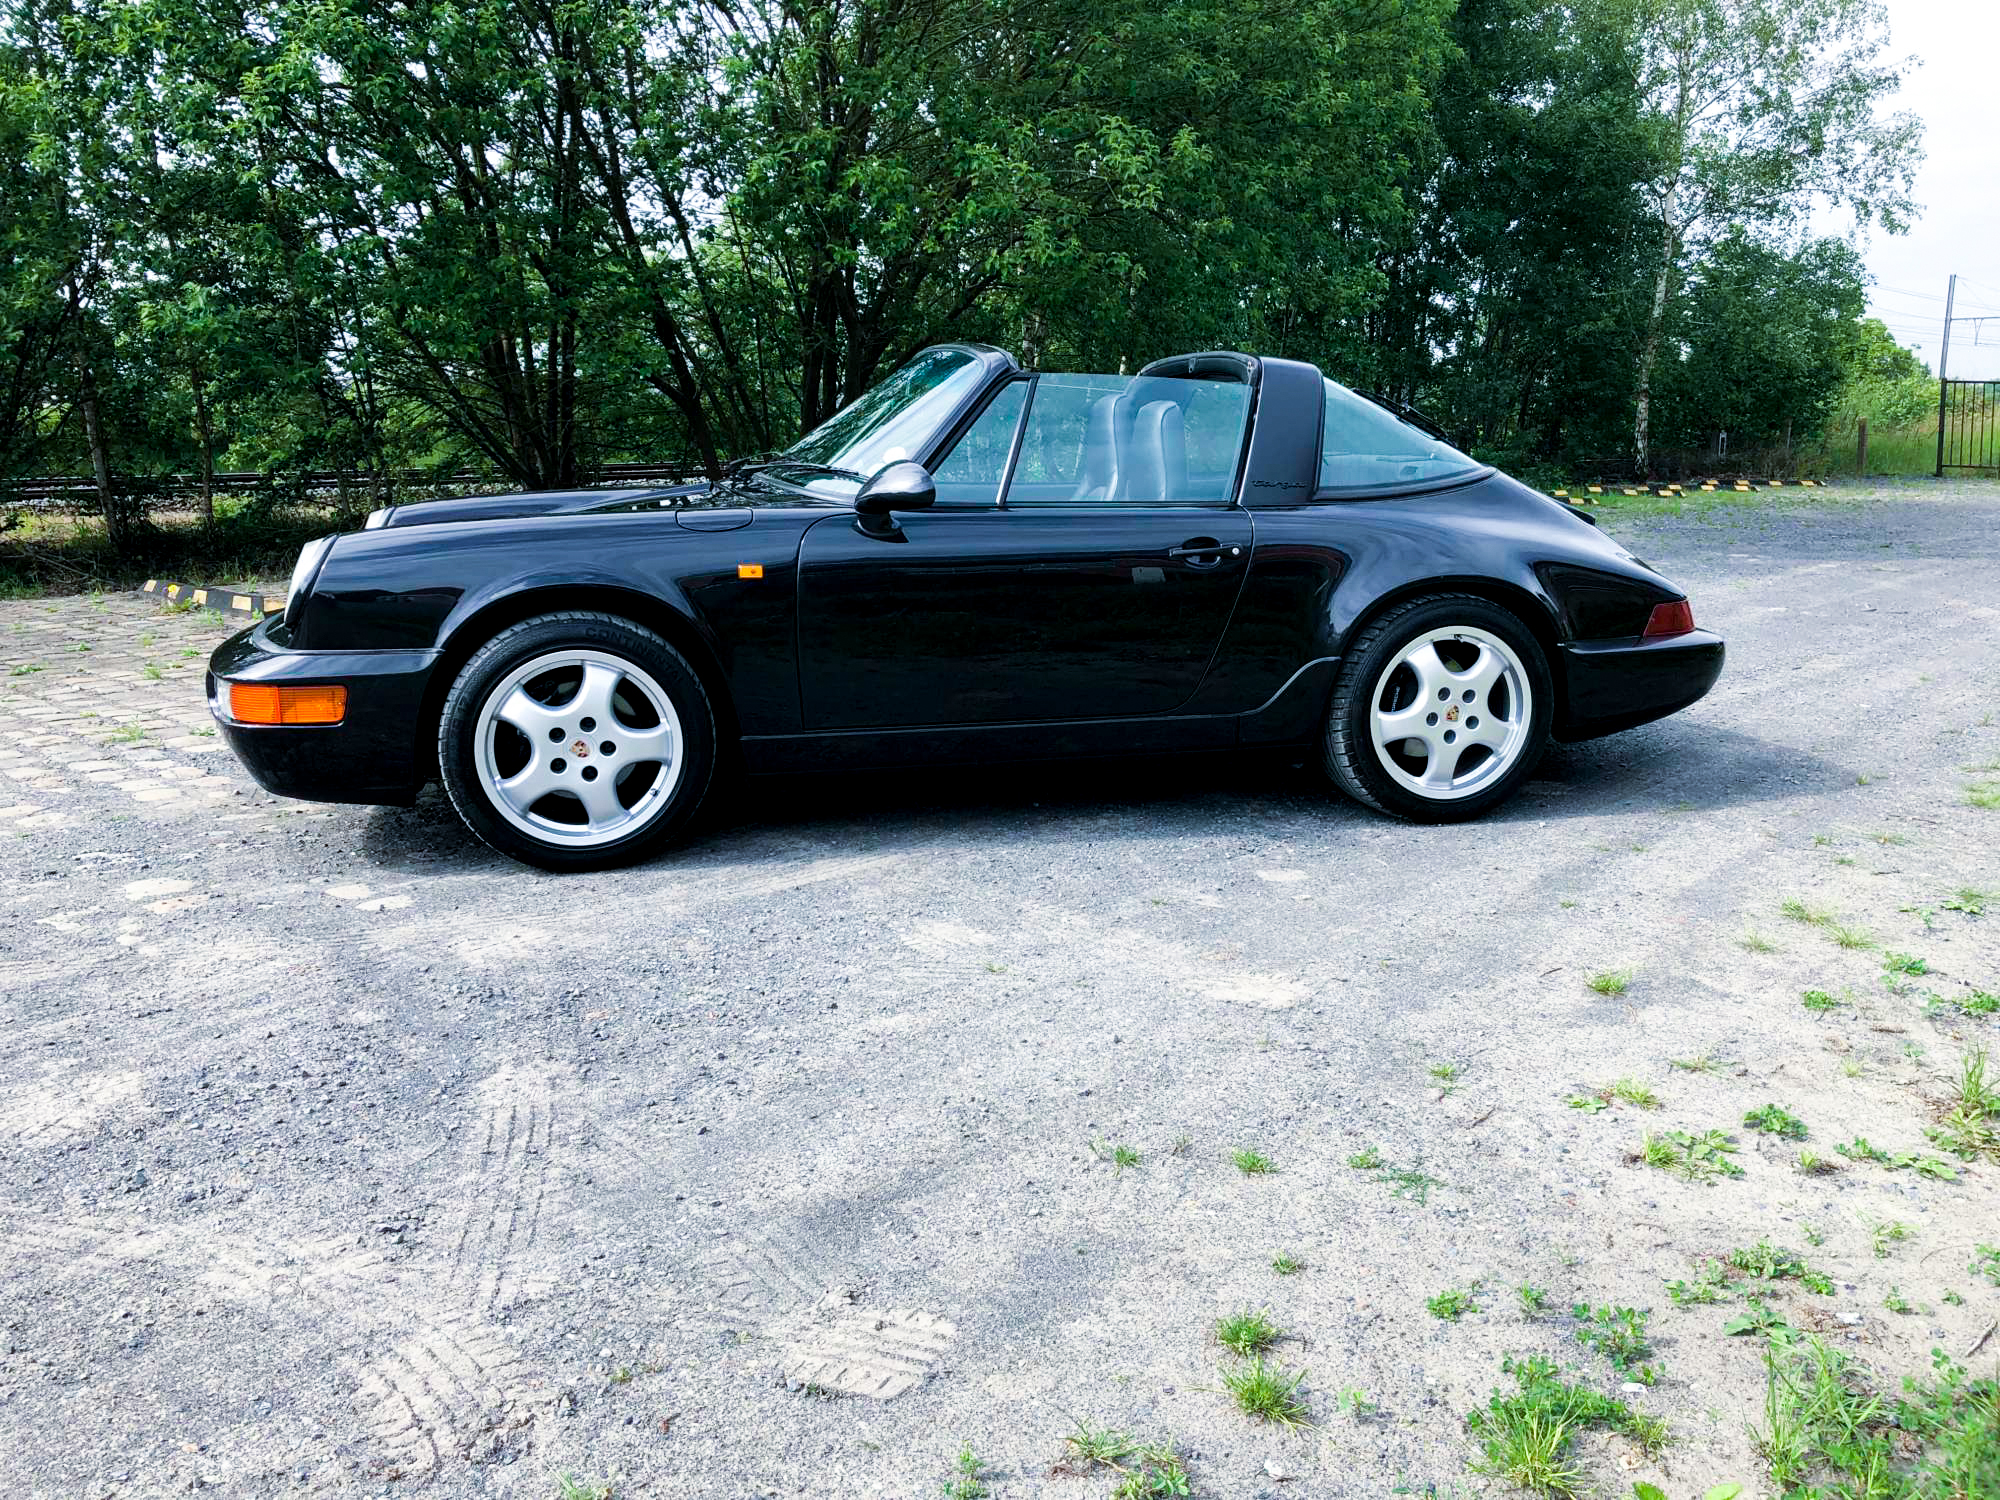 Porsche 964 Carrera 4 1991 Elferspotcom Marketplace For